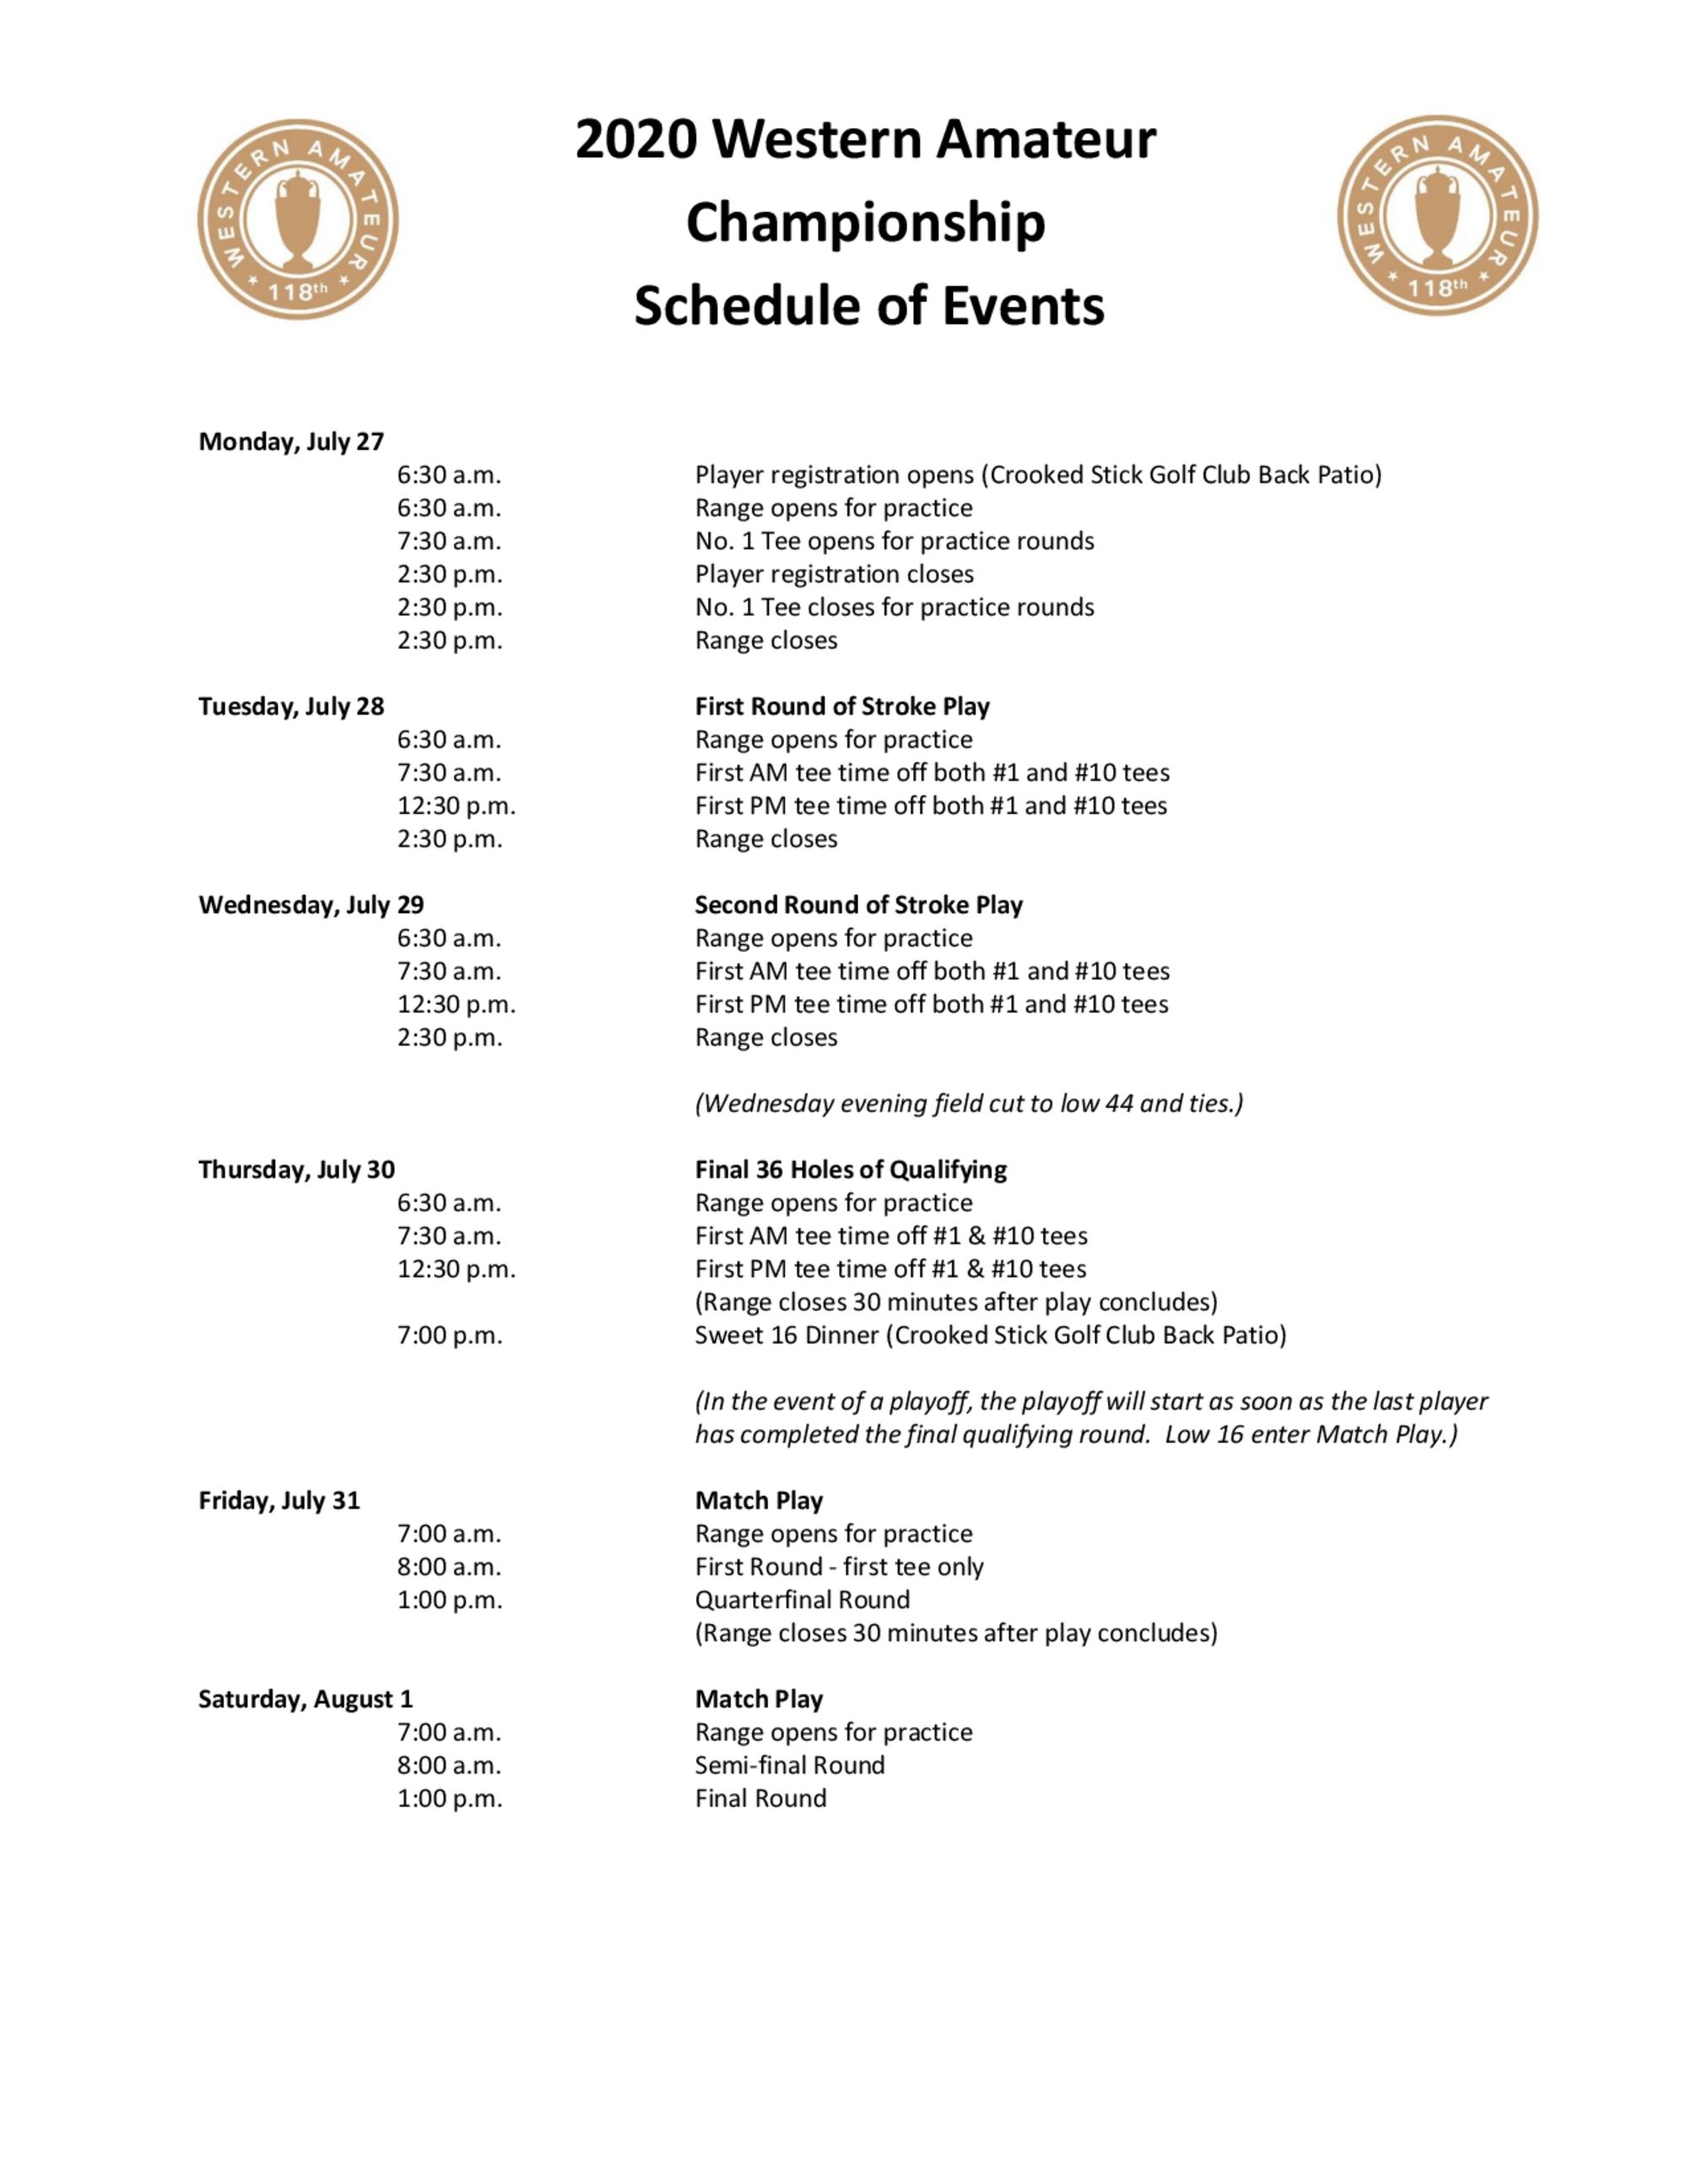 2020 western amateur schedule of events 1